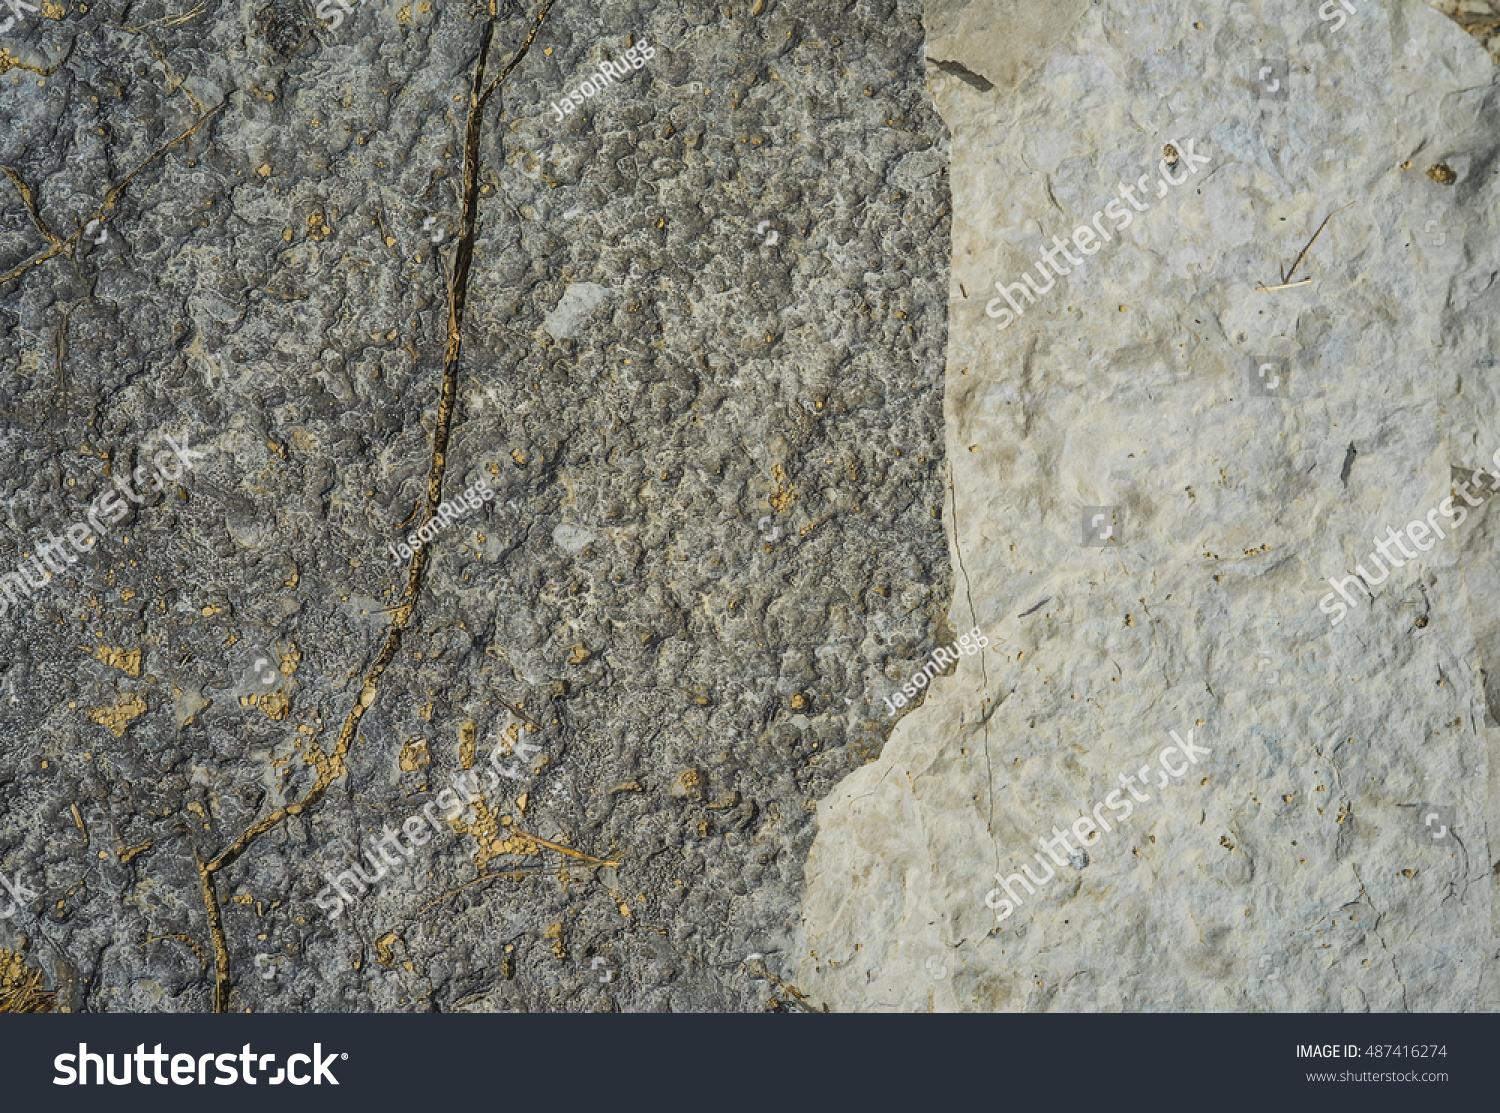 Rocky, organic texture great for 3D… Stock Photo 487416274 - Avopix com